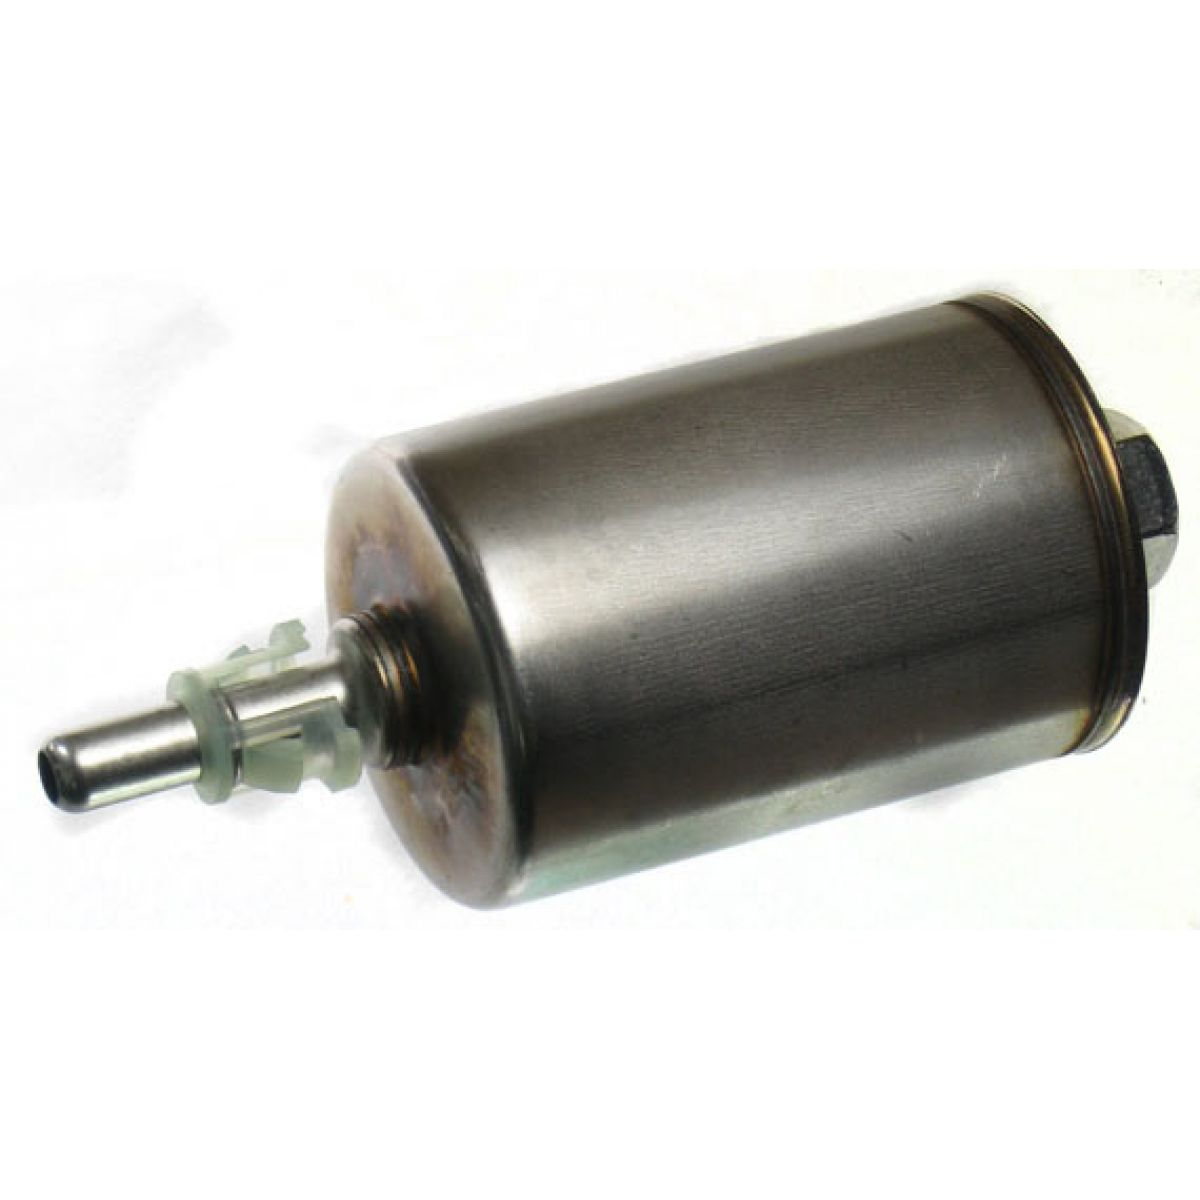 hight resolution of ac delco gf578 fuel gas filter for chevy cadillac buick pontiac olds gmc van